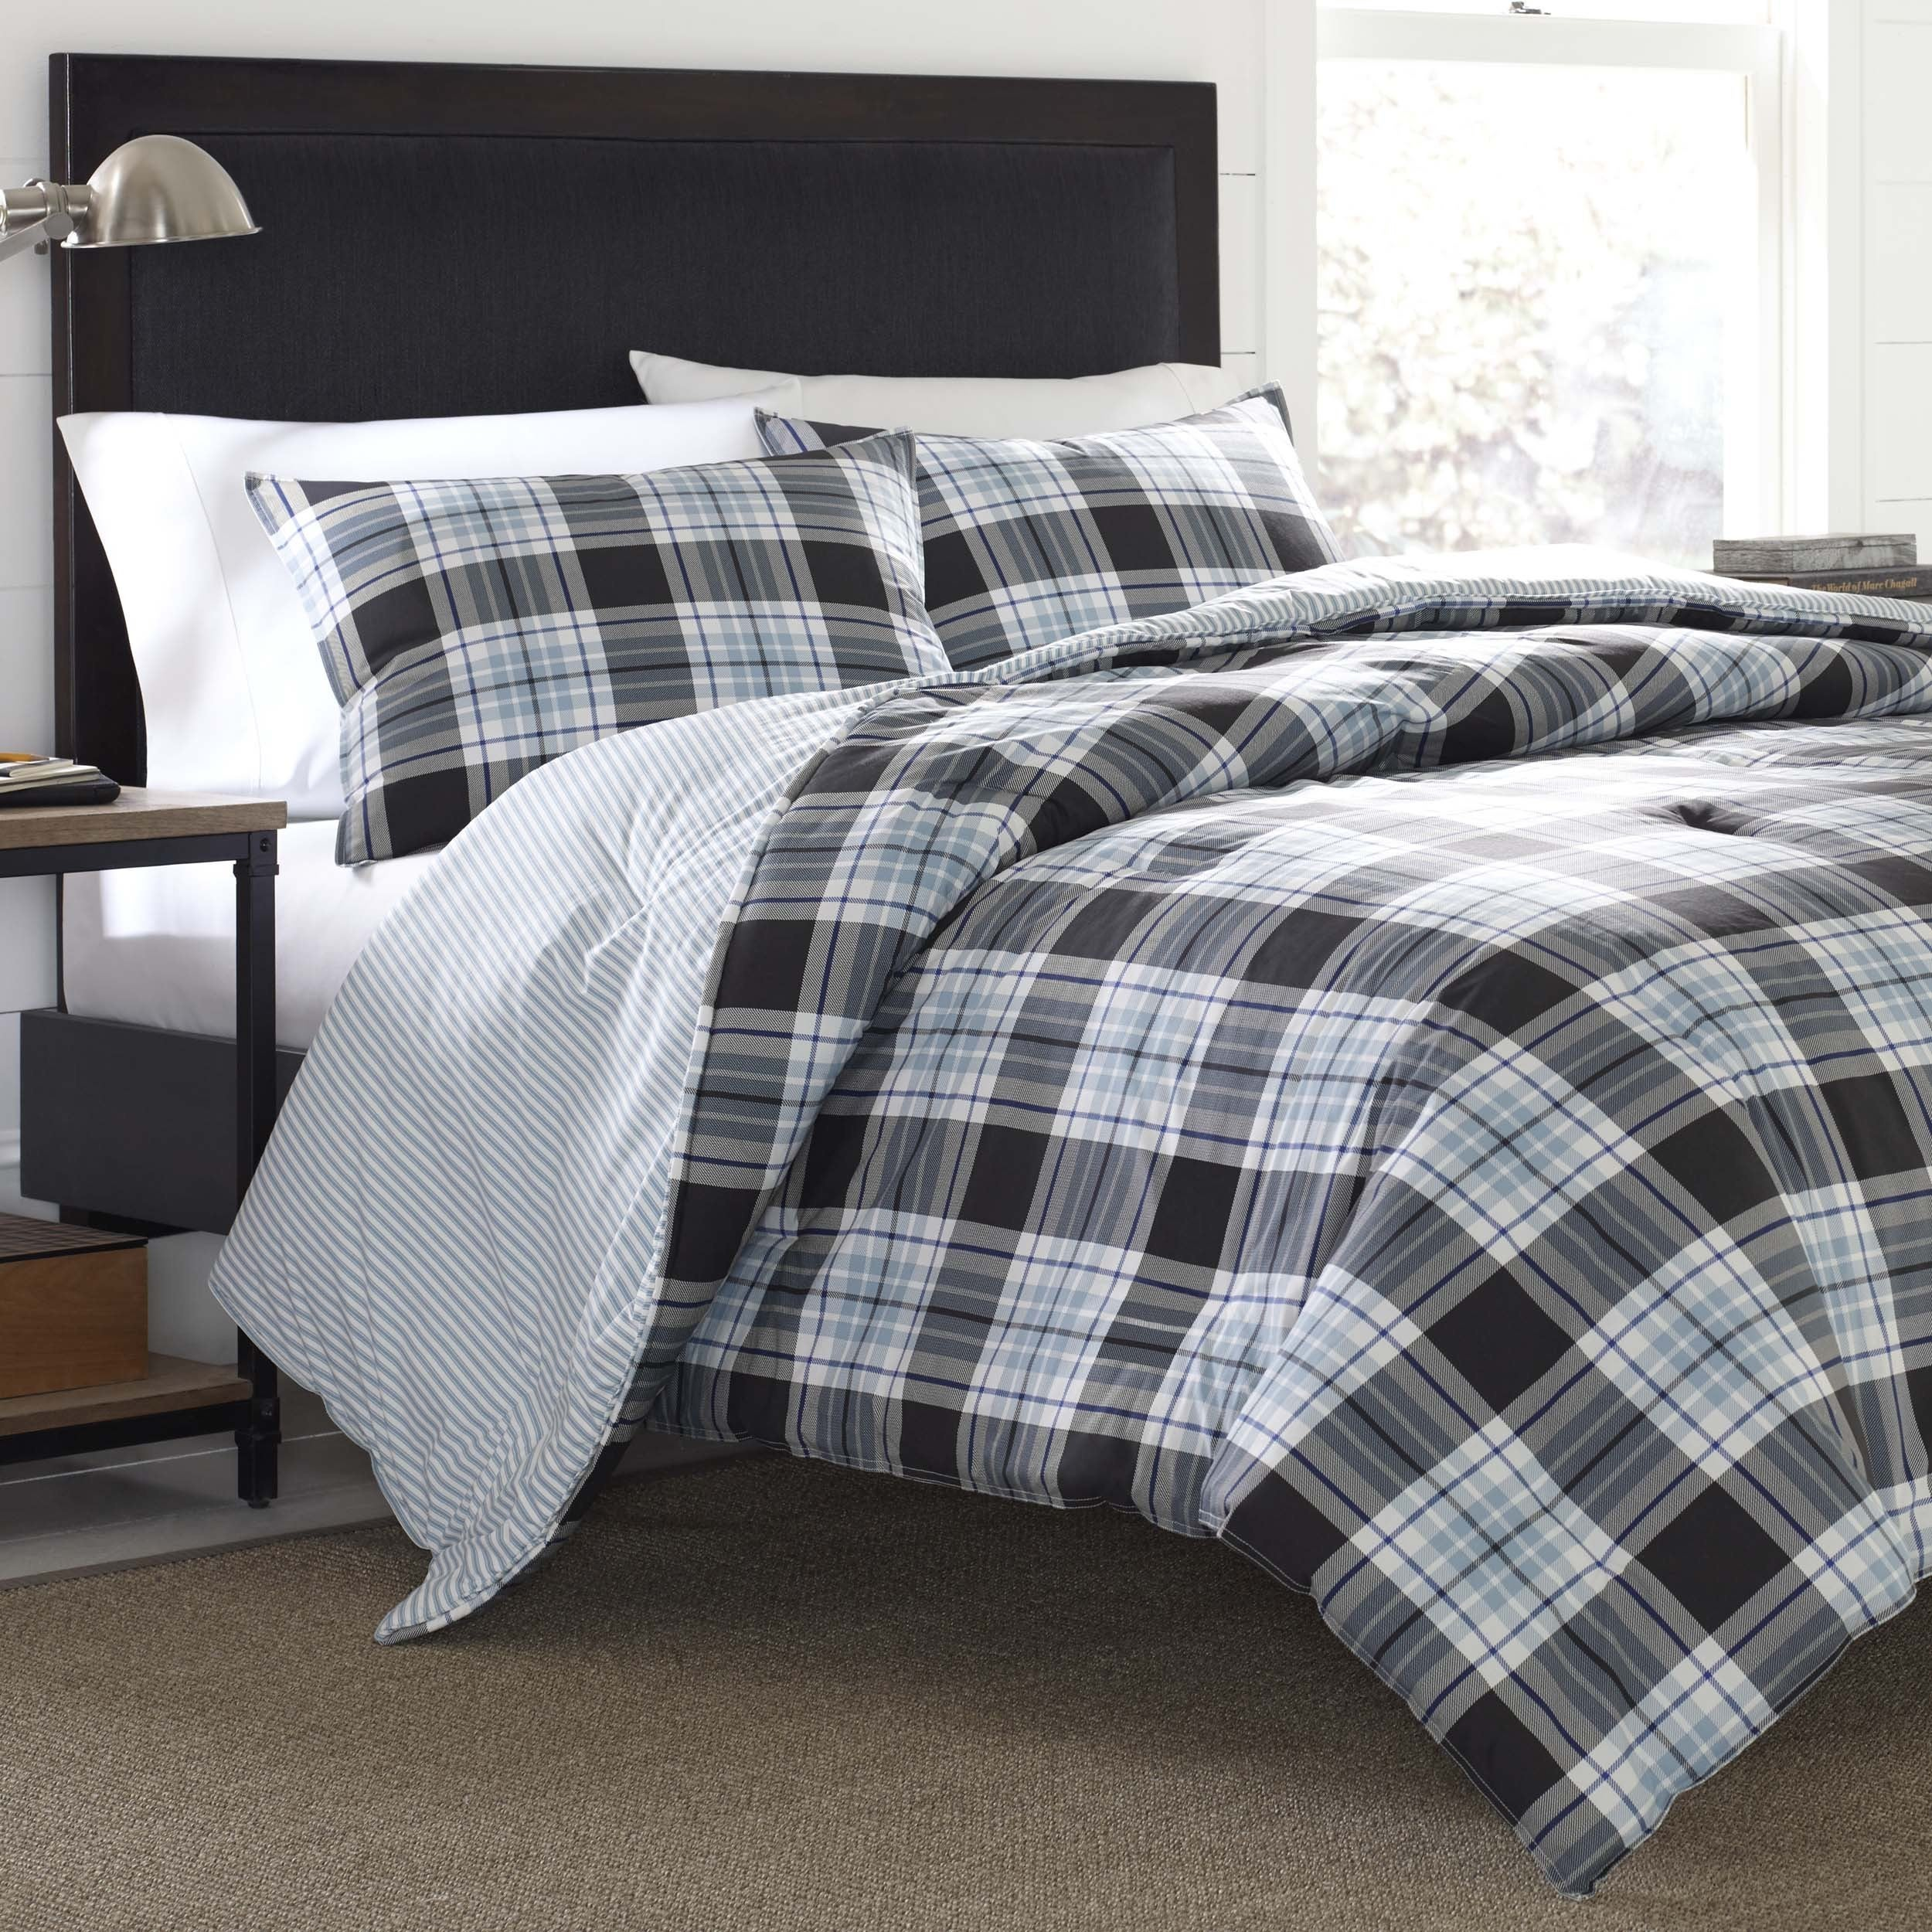 set overstock product comforter shipping today bedding bath plaid alder free bauer eddie